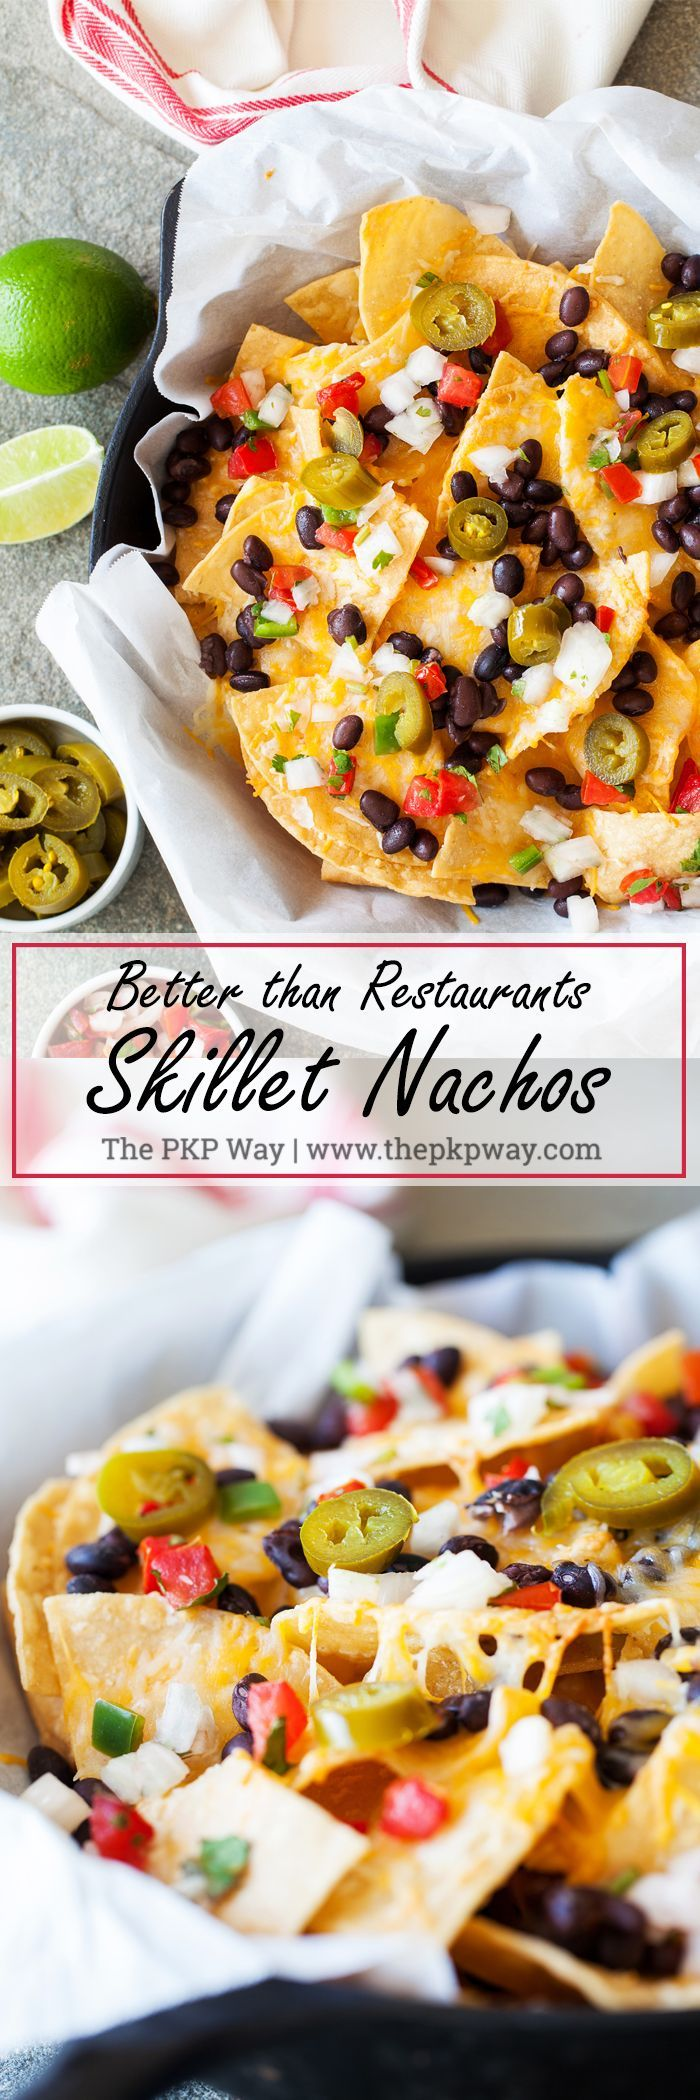 These Better than Restaurants Skillet Nachos gives you cheese in every bite and is topped with plenty of toppings.